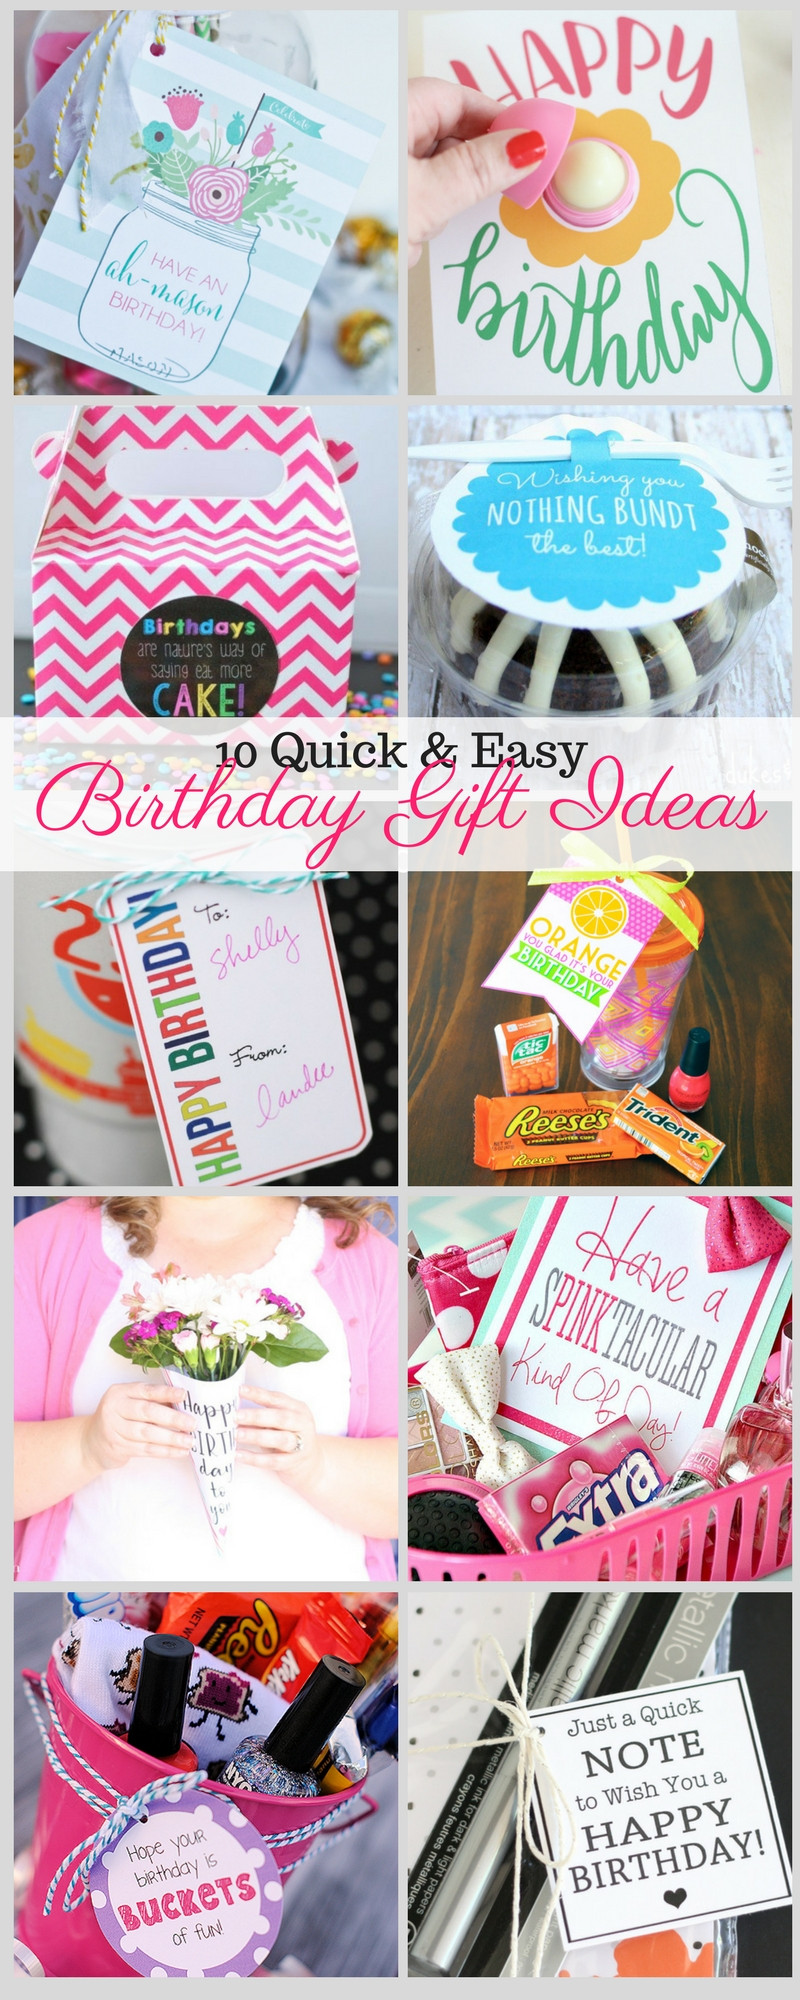 Ideas For A Birthday Gift  10 Quick and Easy Birthday Gift Ideas Liz on Call